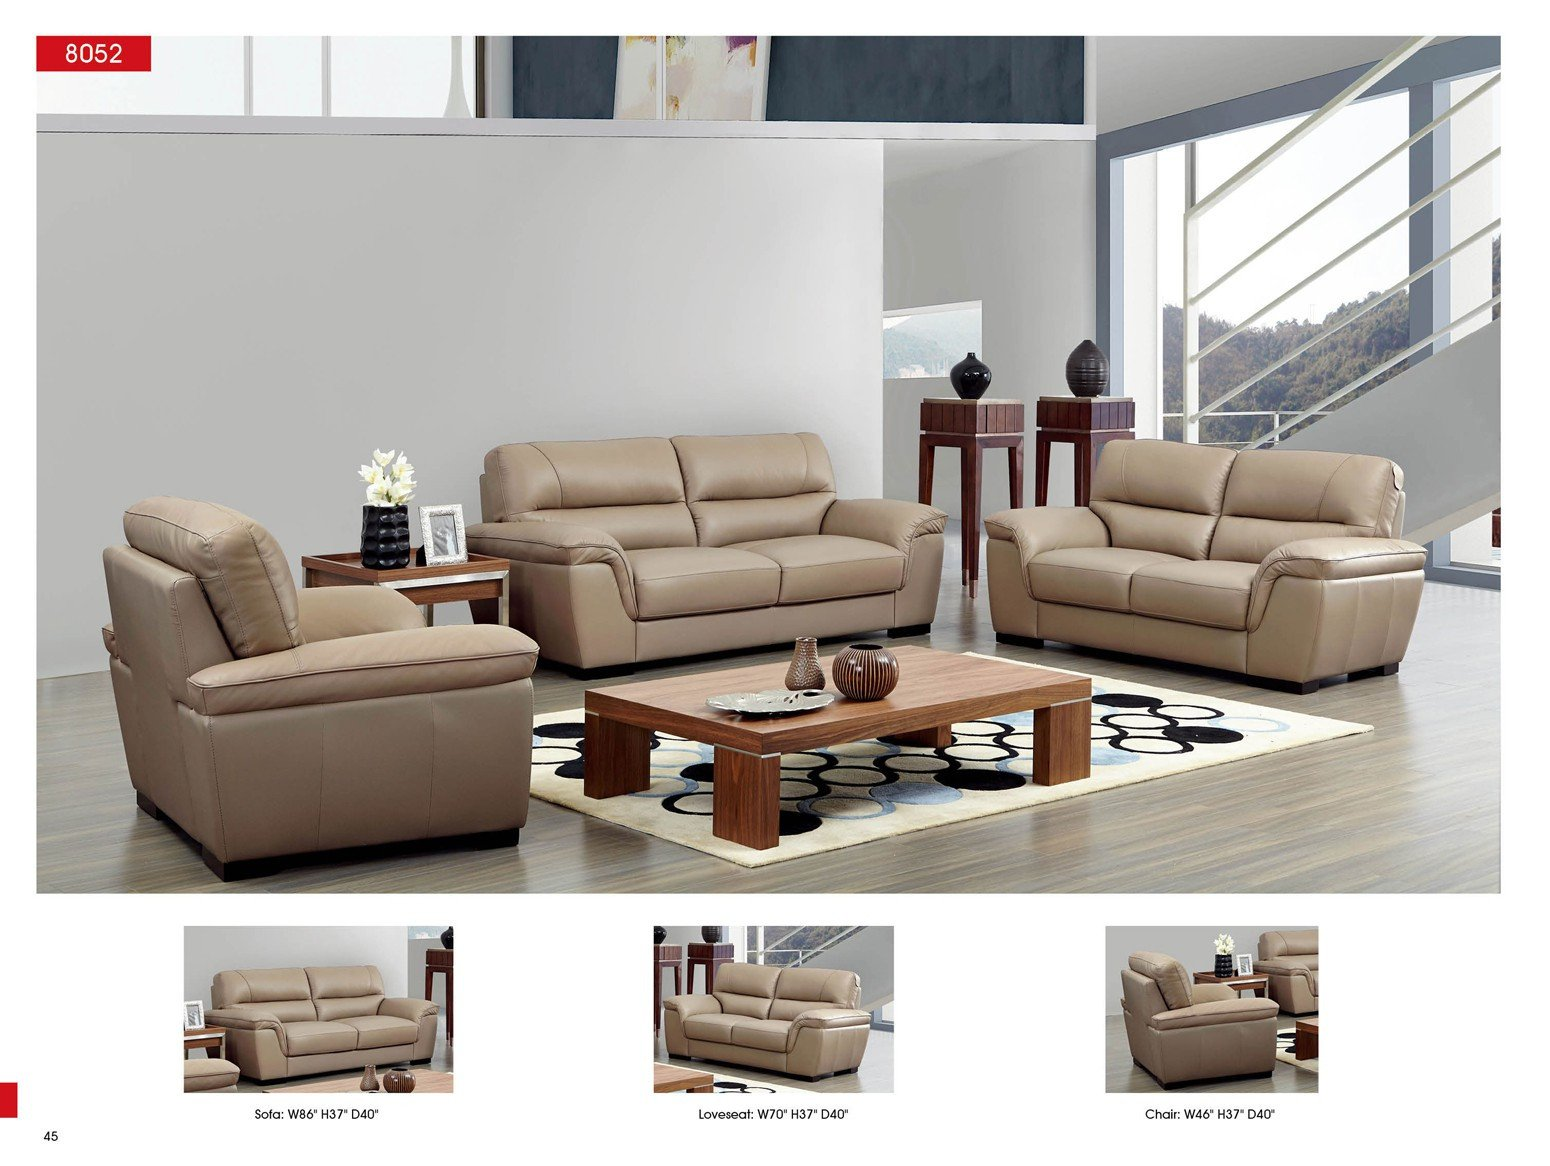 Contemporary Living Room sofas 8052 Leather sofa Esf Neo Furniture